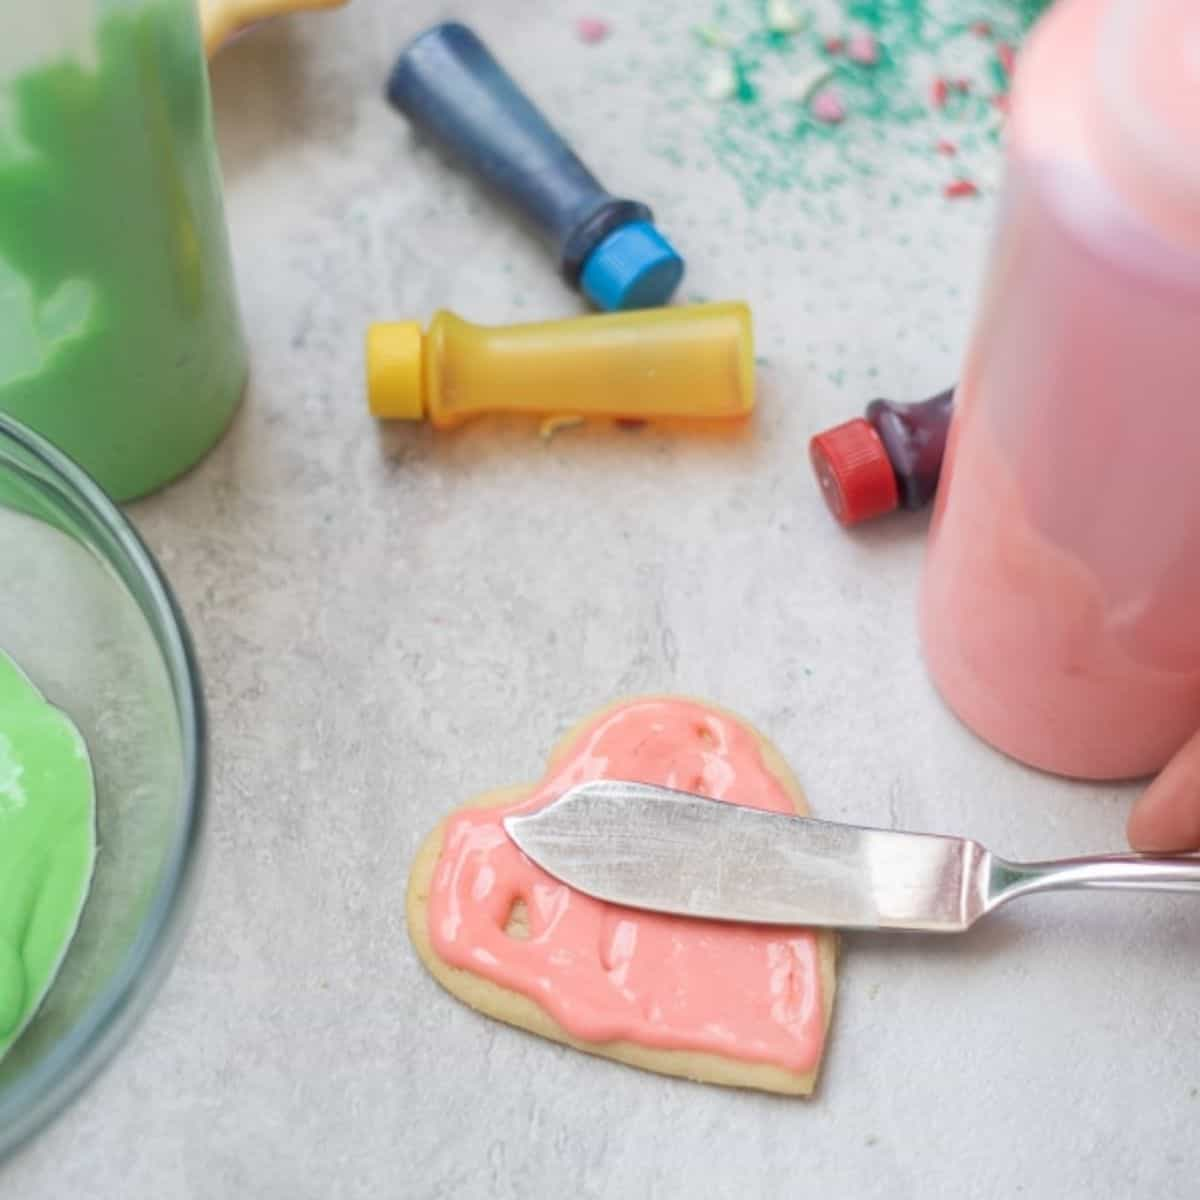 Spreading icing on sugar cookie with small spatula